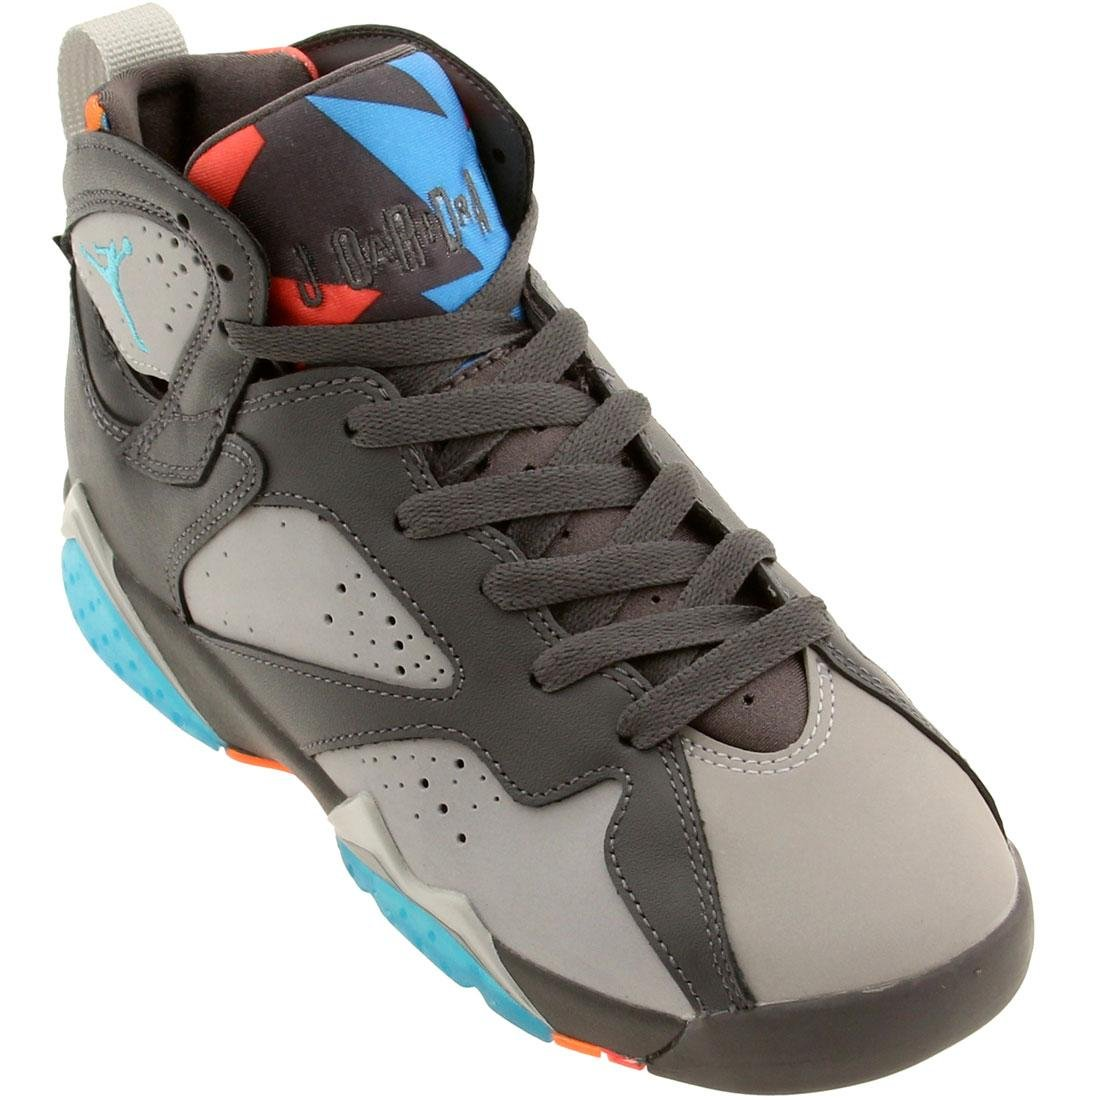 Dark Grey Torquoise bluee-Wolf Grey-Total Grey Nike Men's Air Jordan 5 Retro Basketball shoes